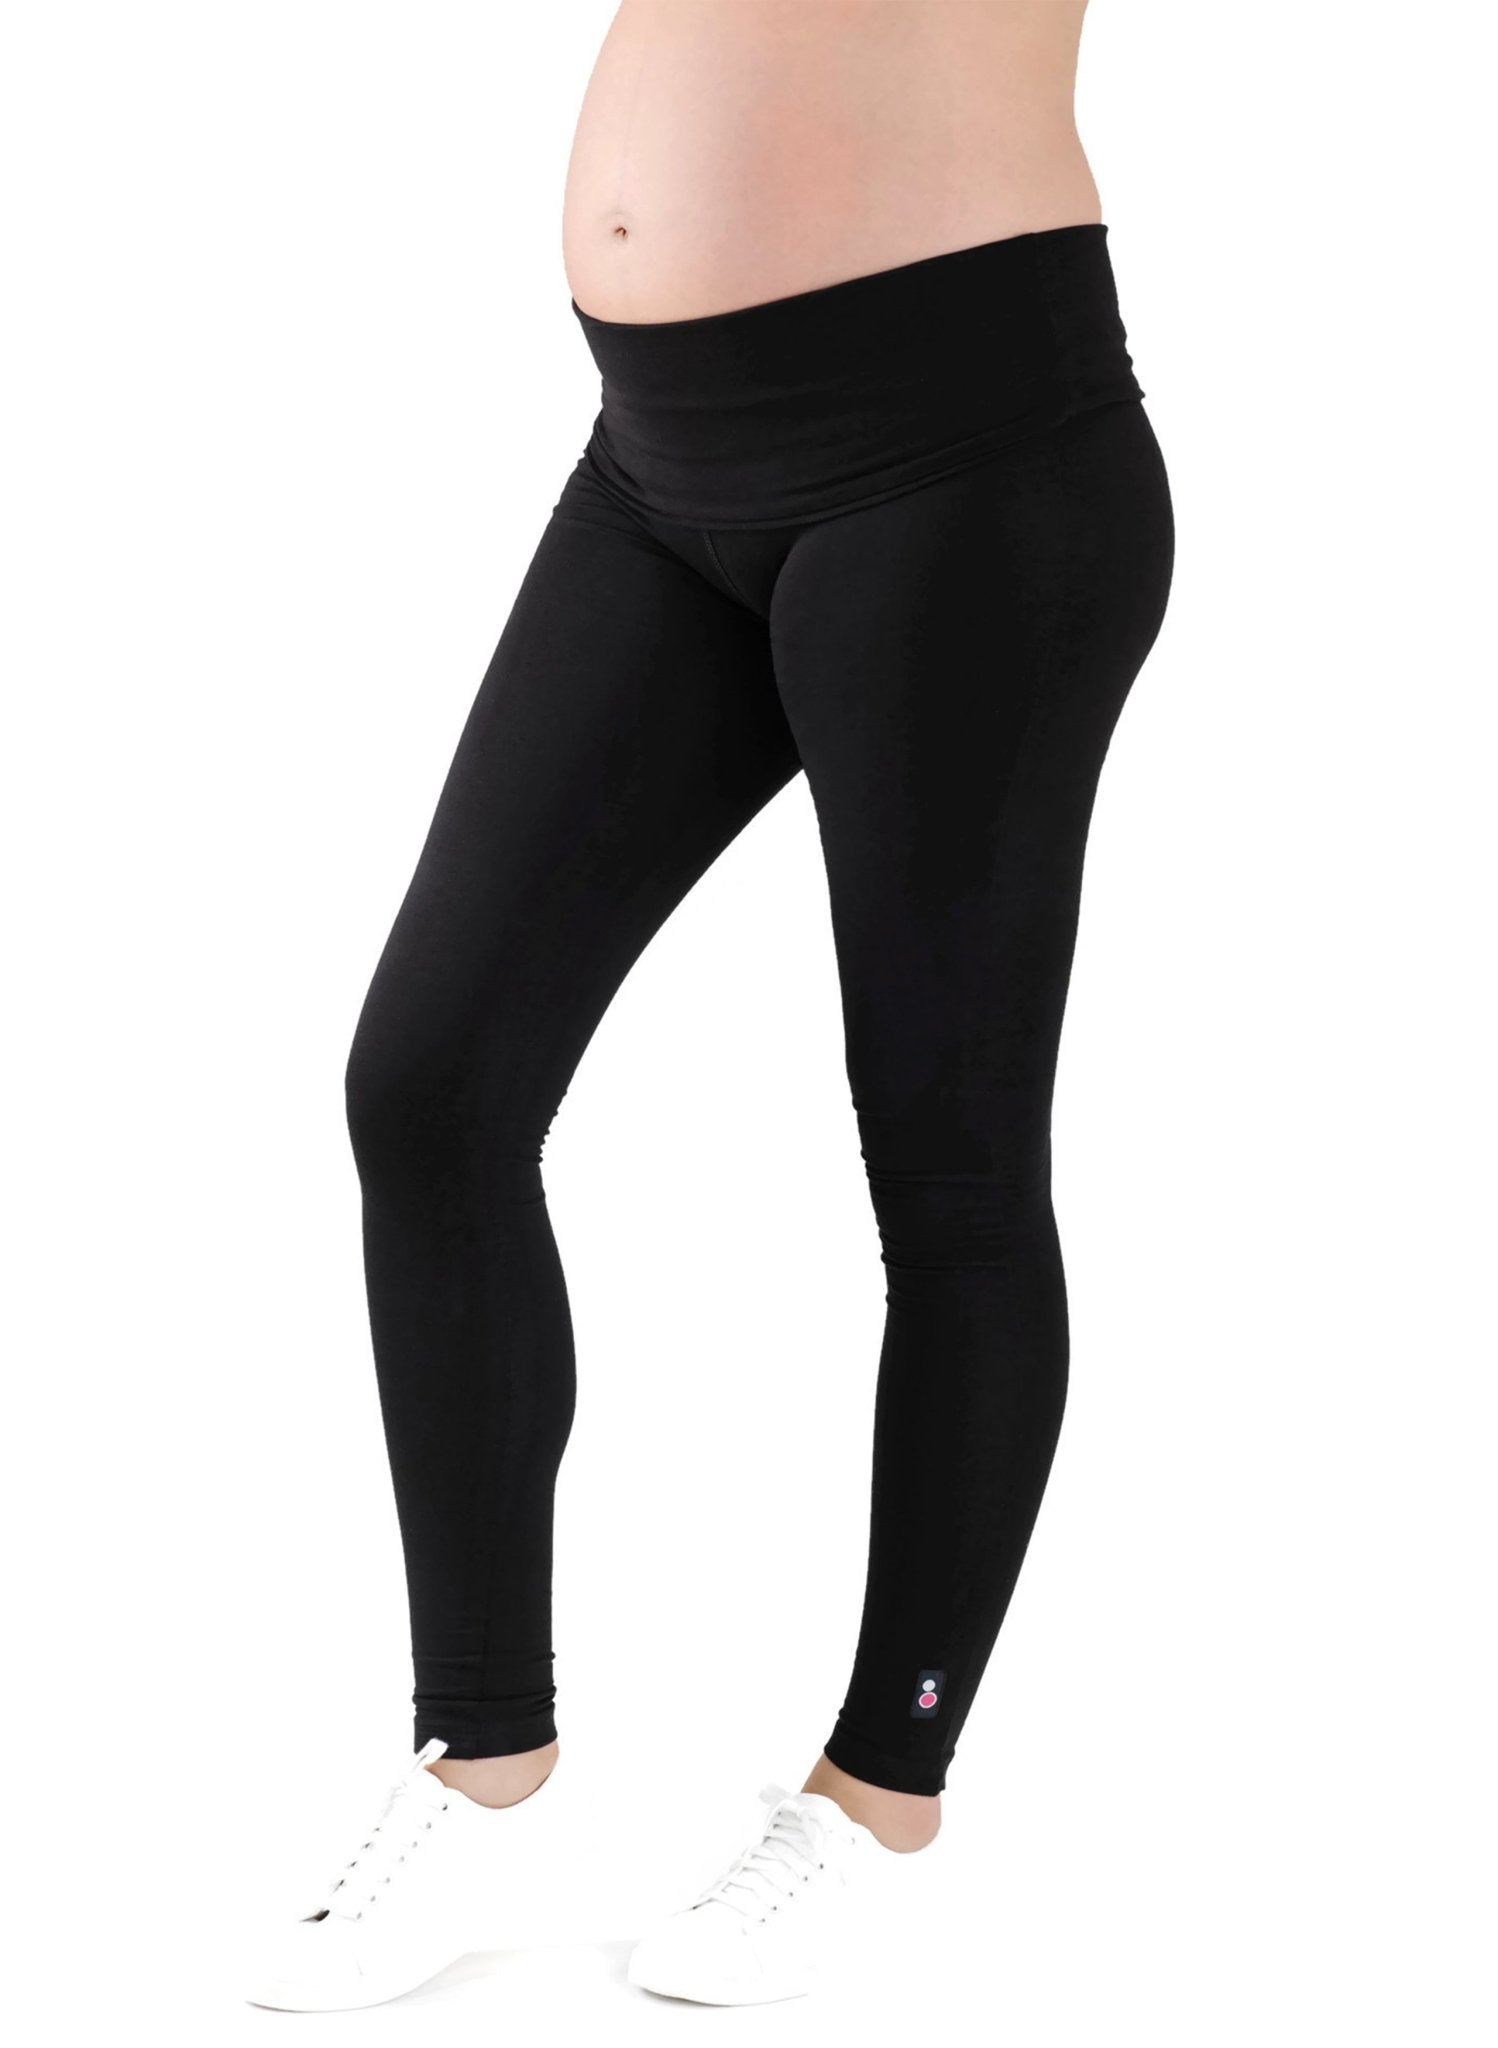 Exercise Maternity Leggings - Mums and Bumps